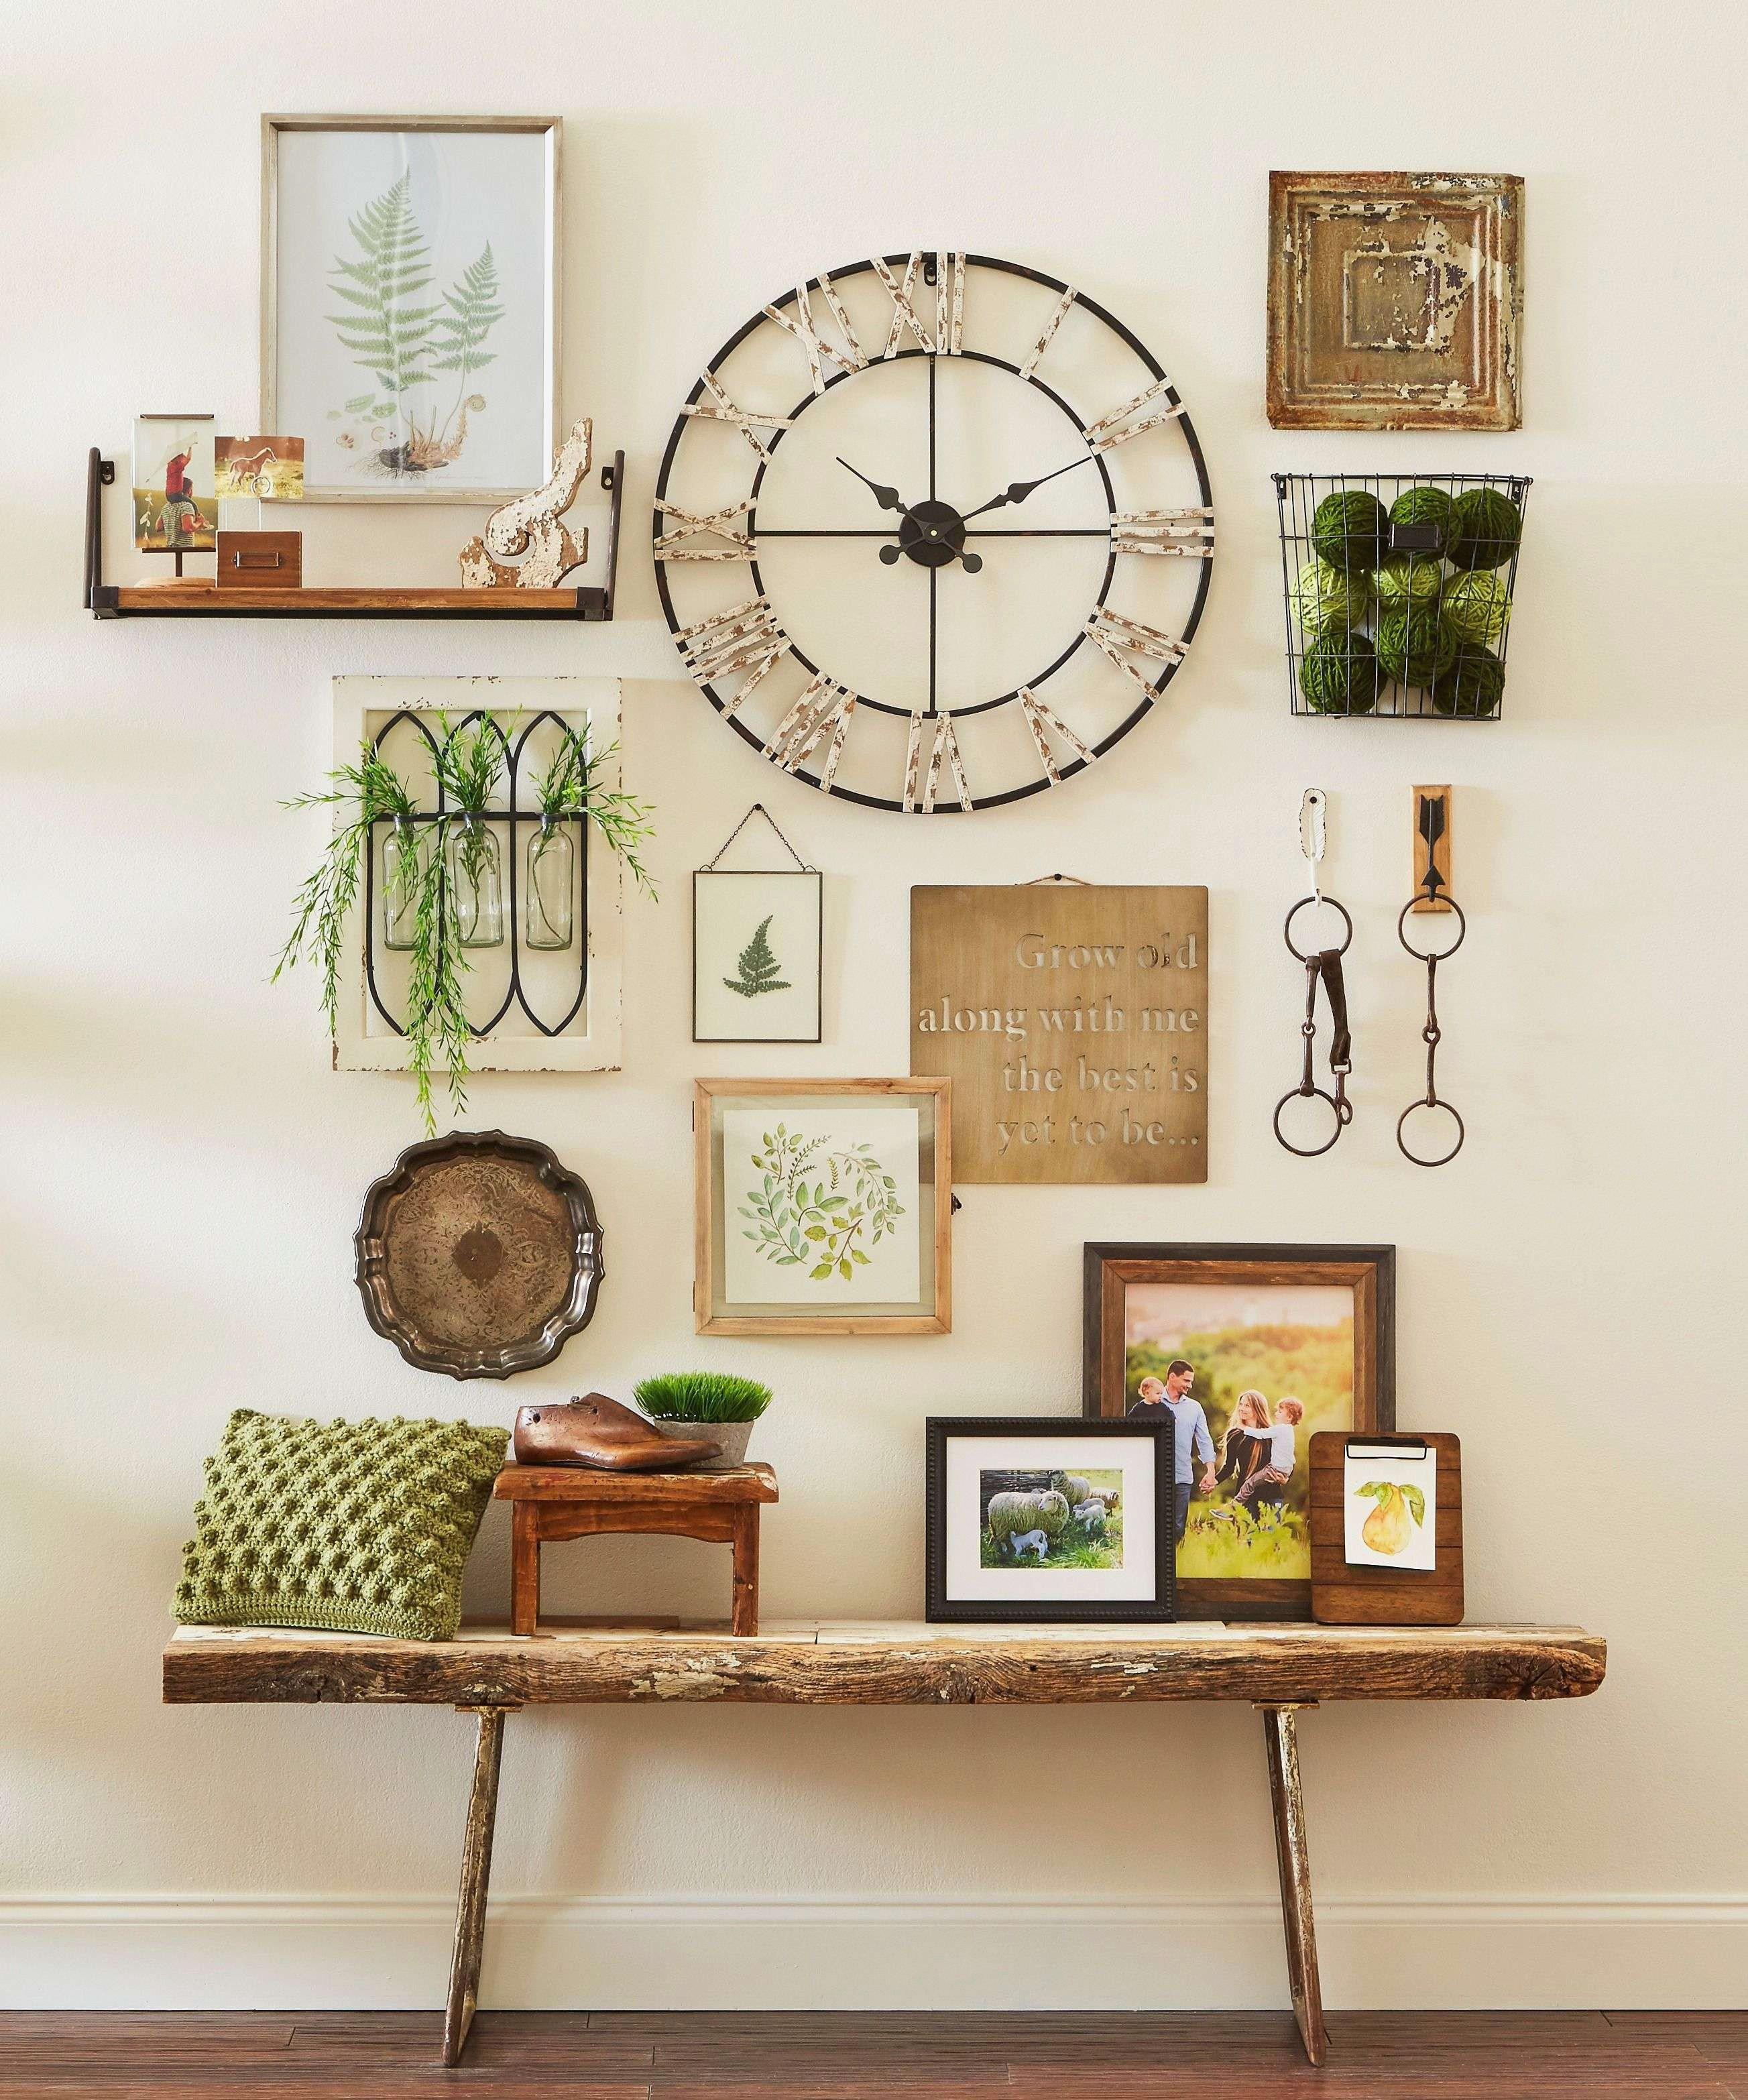 Homemade Wall Decoration Ideas for Bedroom Awesome Bedroom Simple Easy Diy Good Home Design Best to Furniture